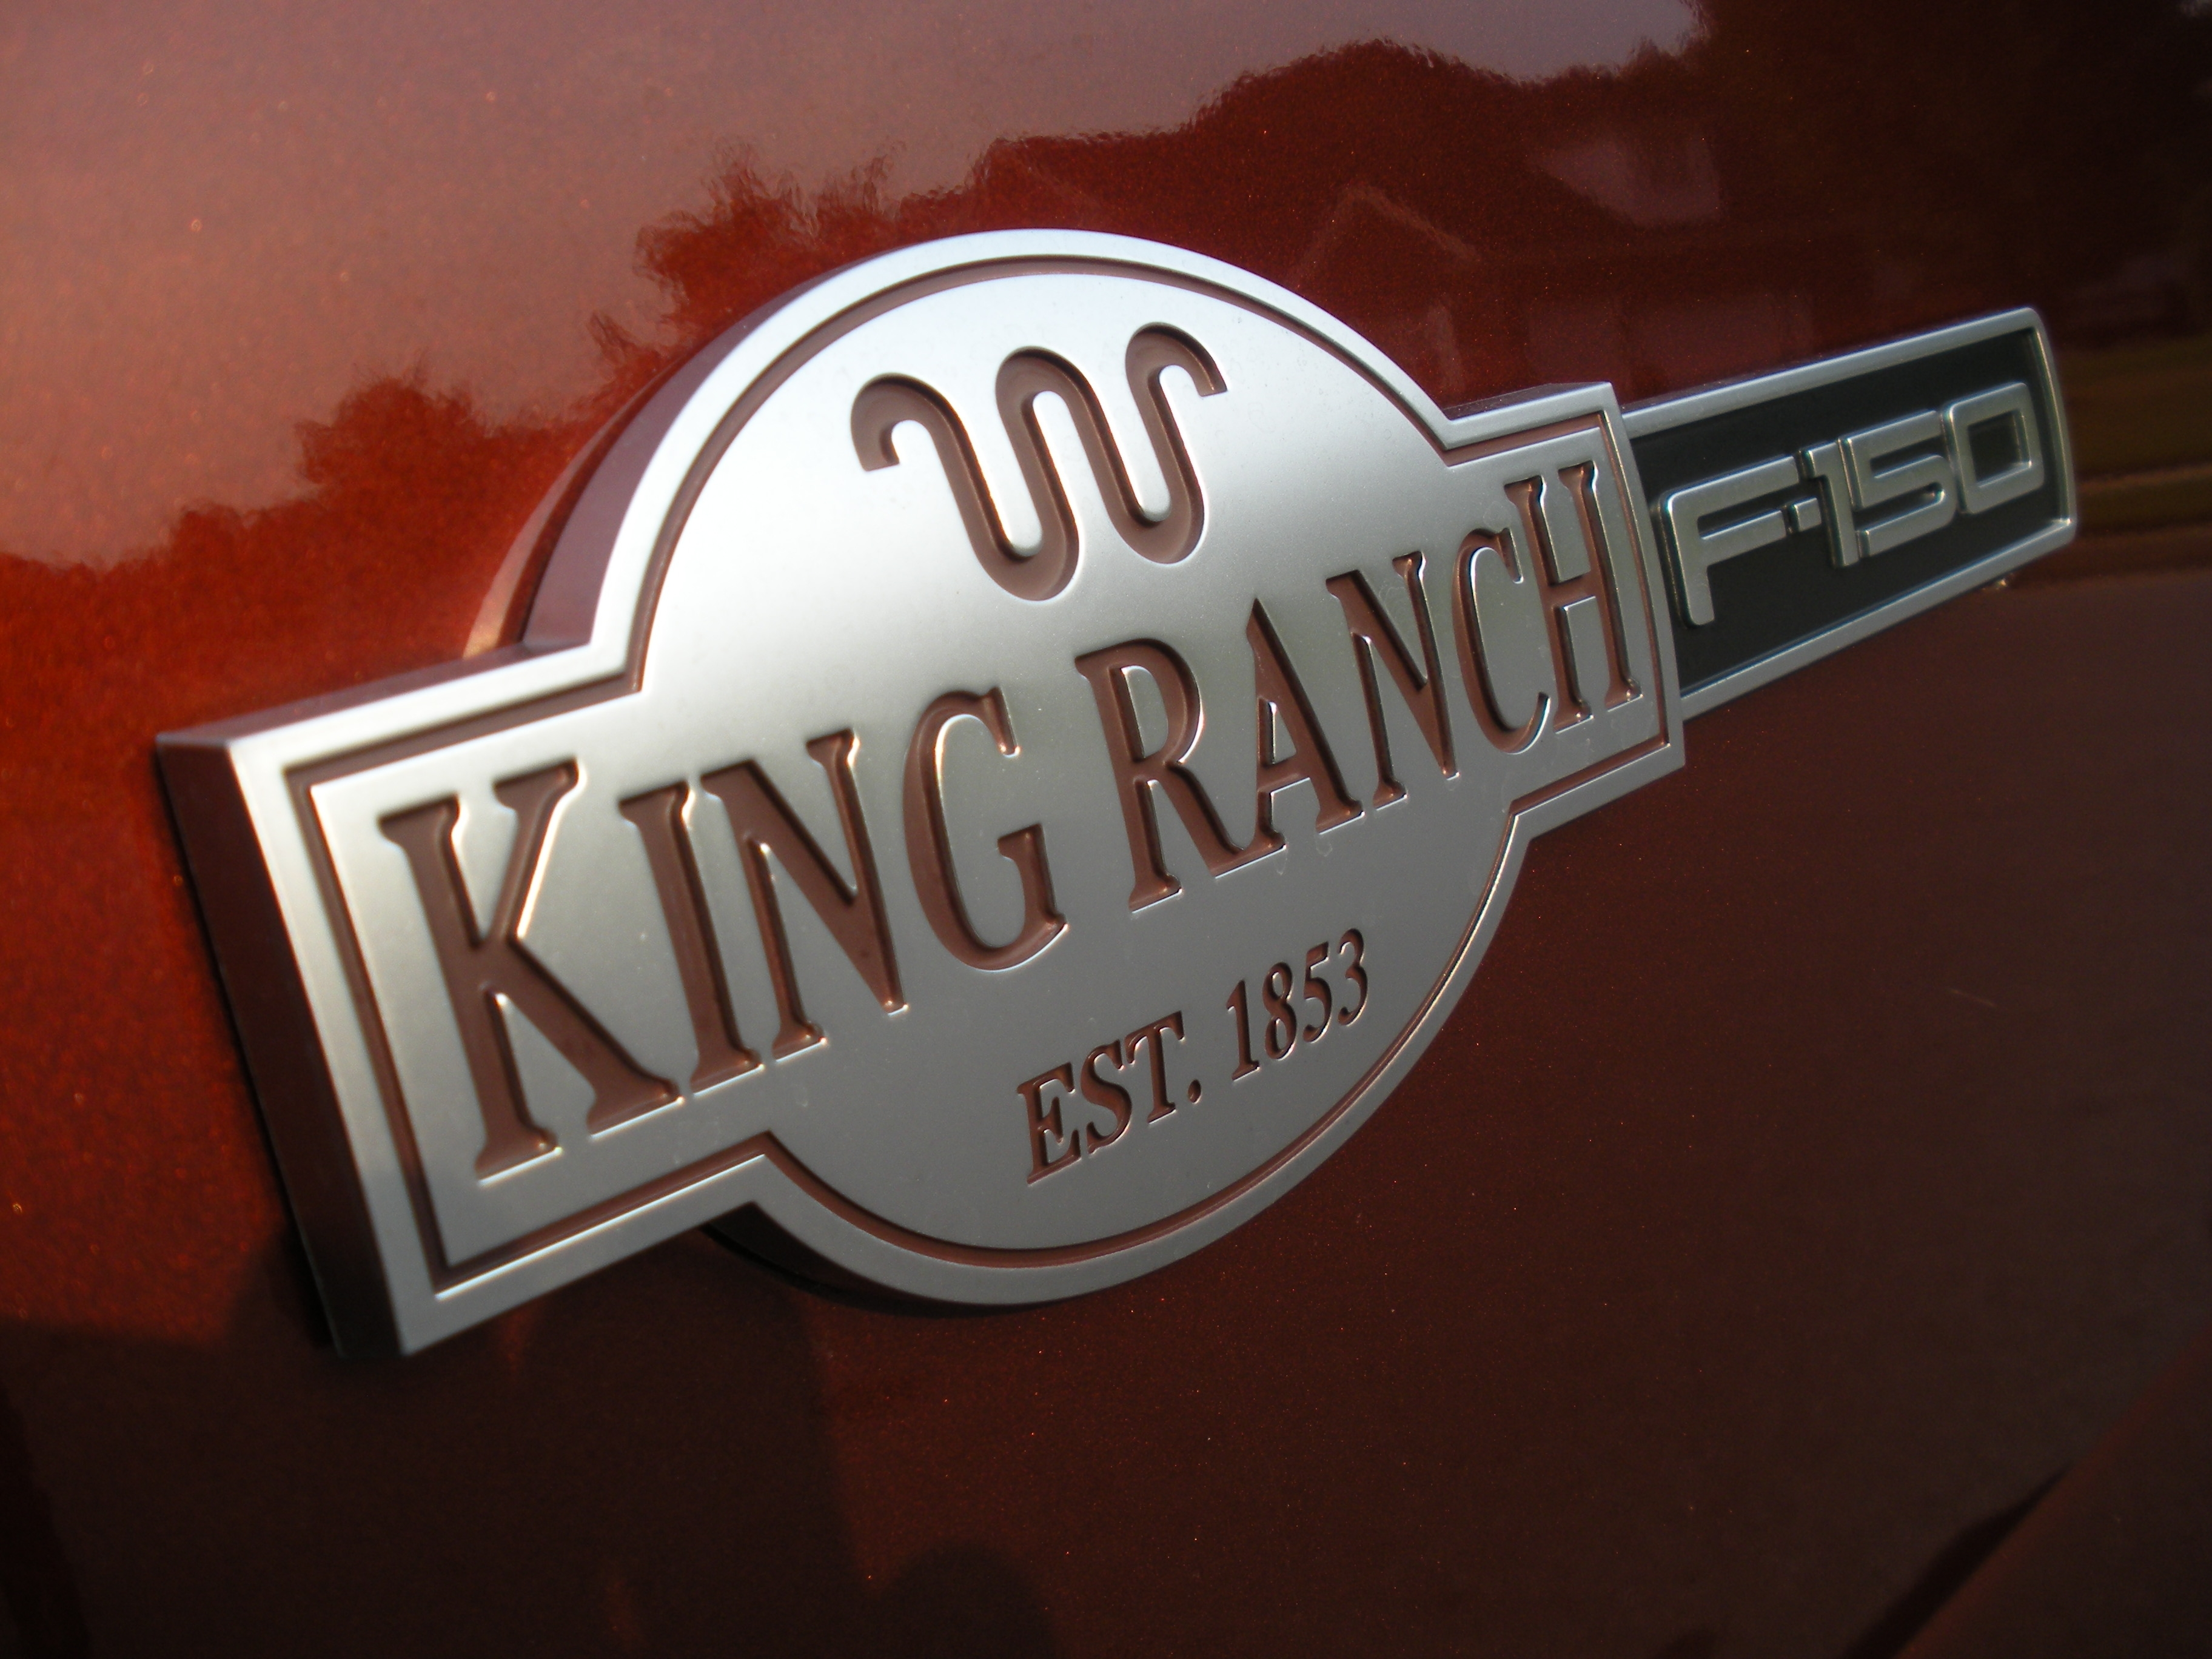 Km2kingranch 2007 Ford F150 Supercrew Cabking Ranch Styleside Pickup Fuel Filter F 150 Cab 38816064009 Original